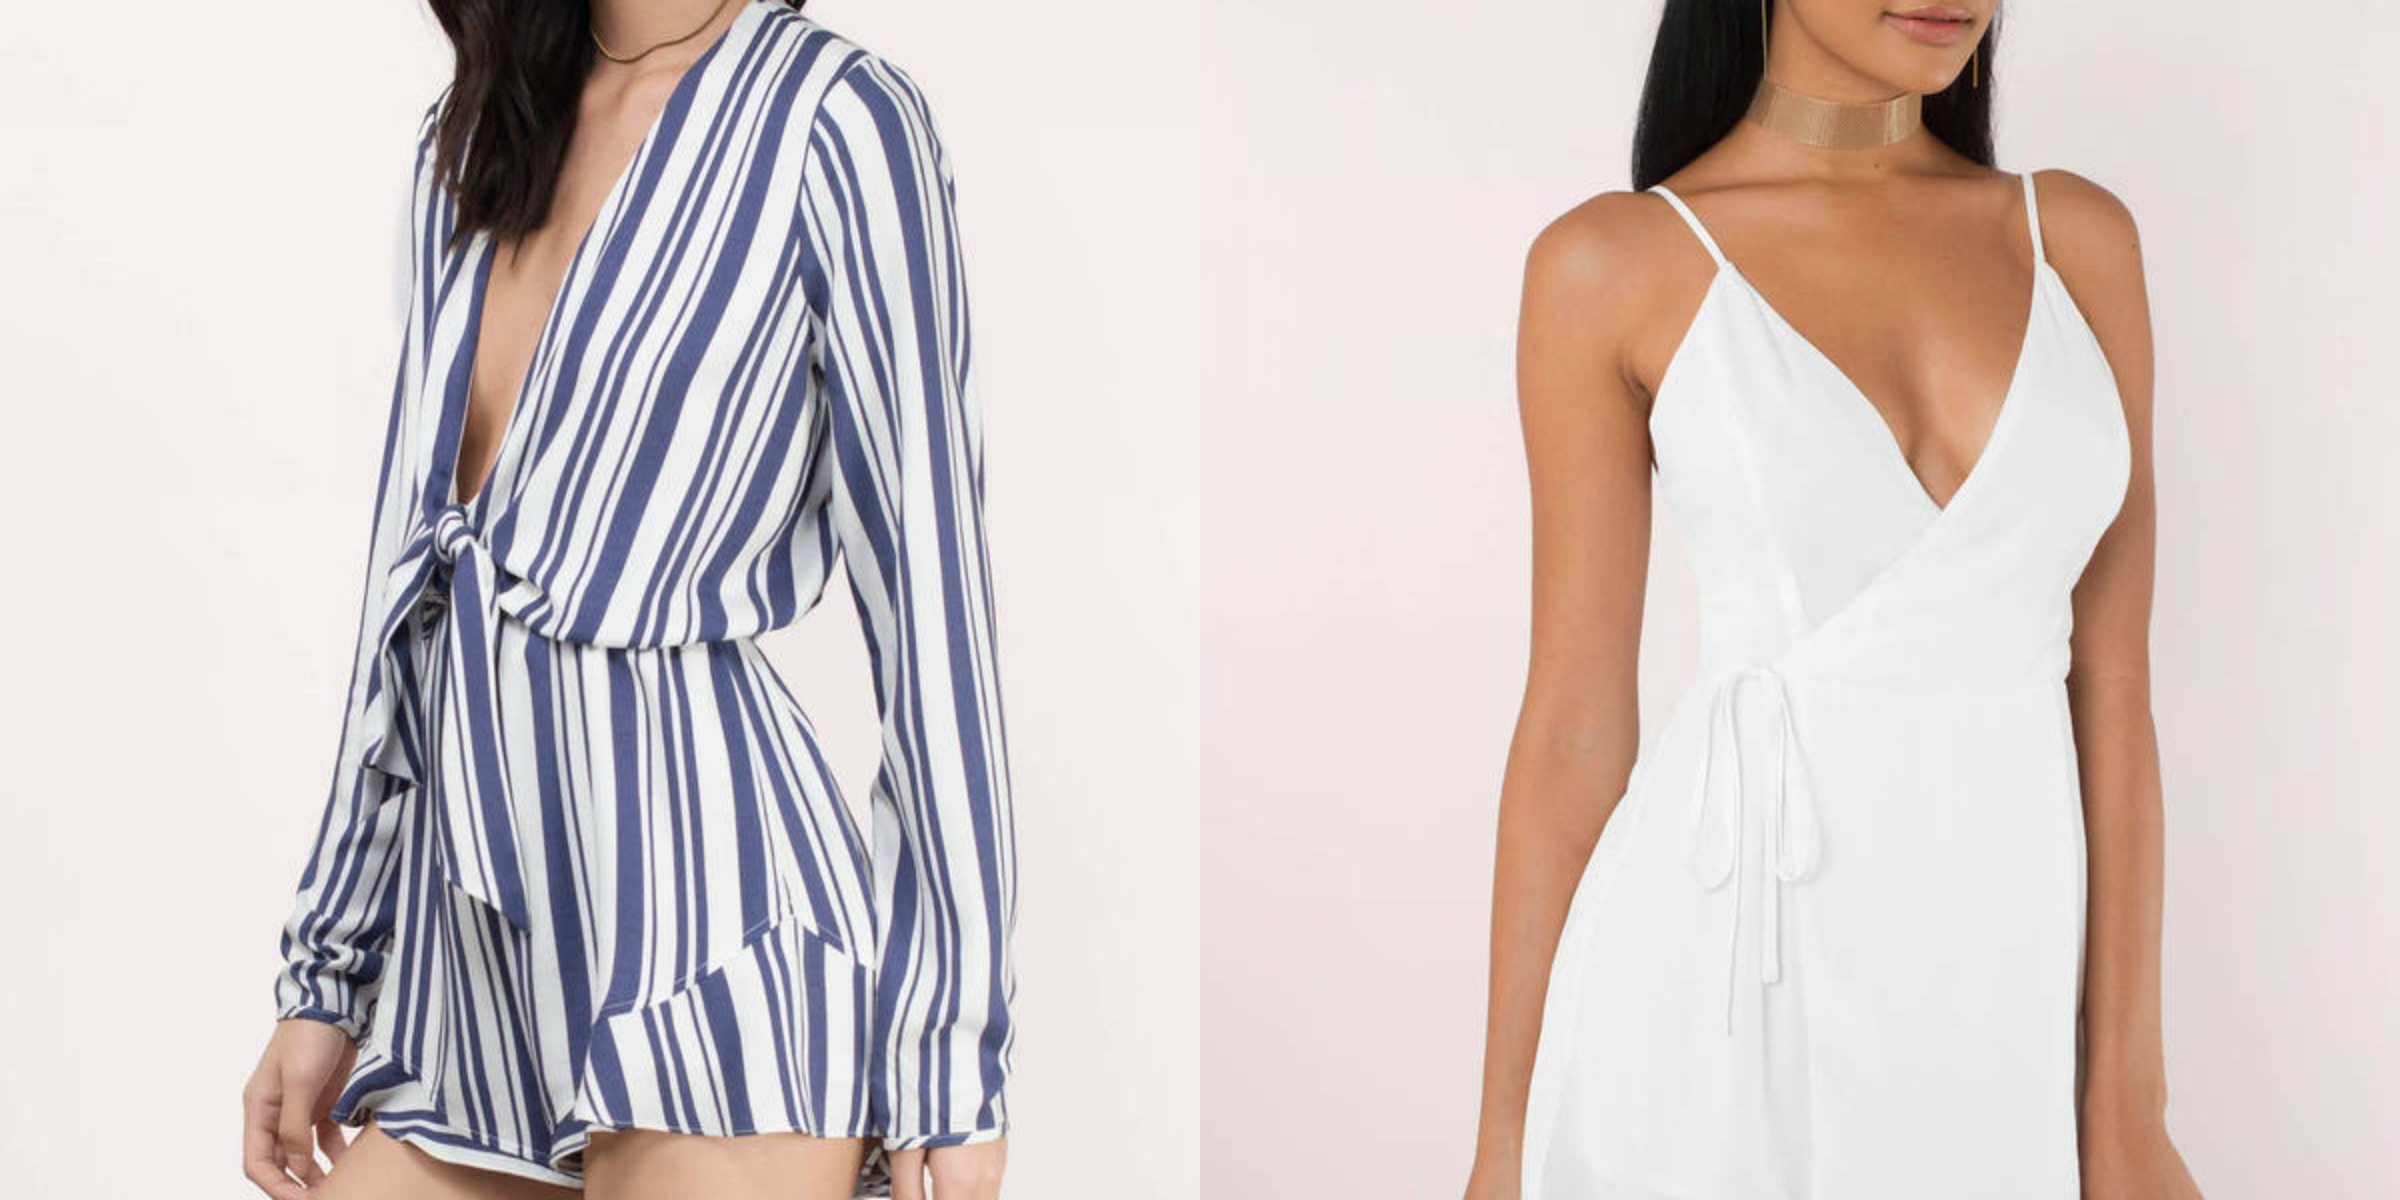 Three Pieces You Need This Labor Day Weekend